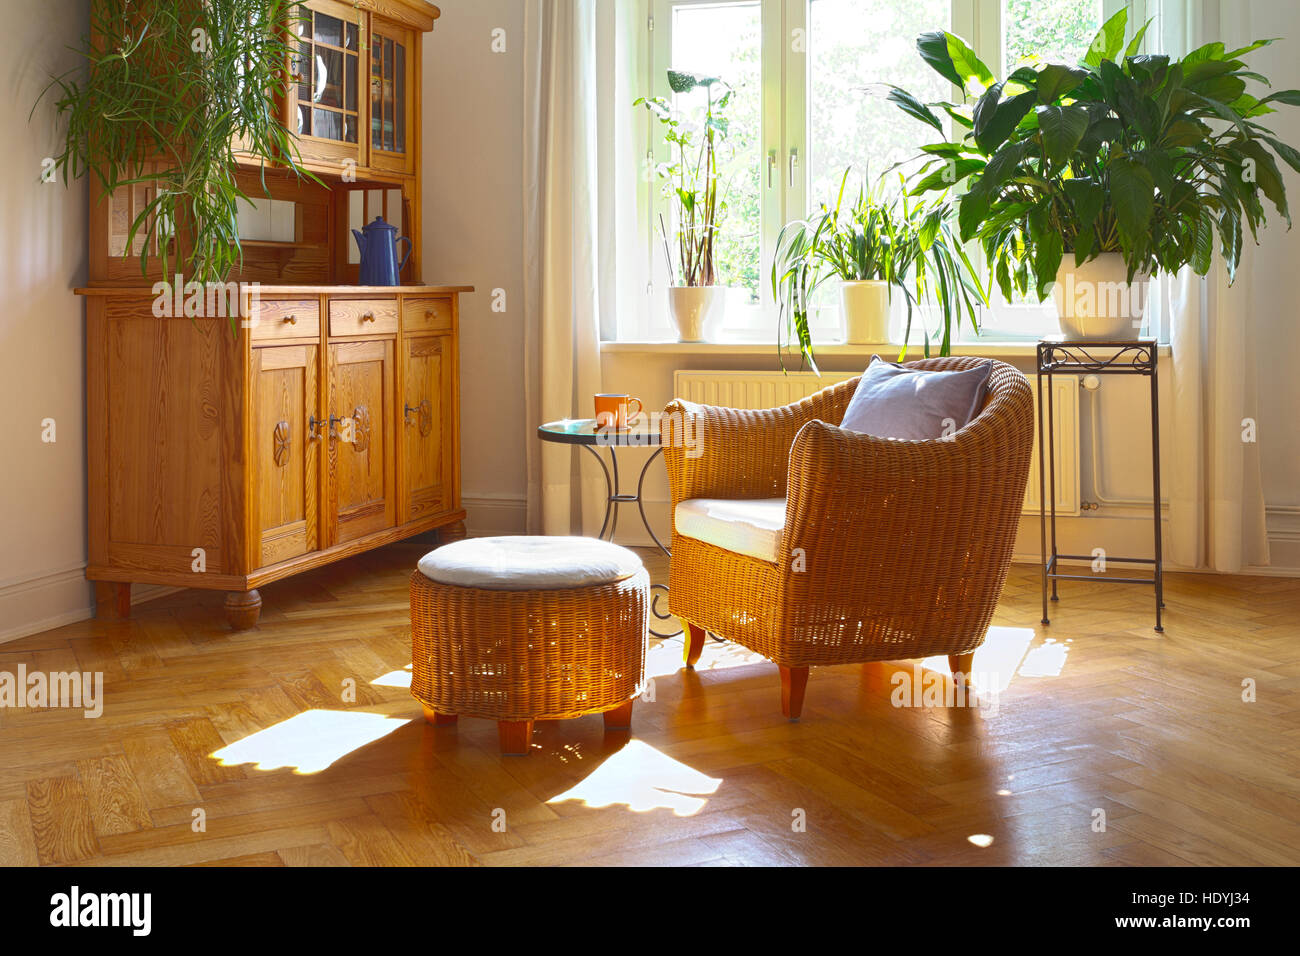 Stock Photo   Sunny Living Room In Warm Colors With Cozy Wicker Armchair  And Stool, Vintage Cupboard, Plants And Large Windows, Nostalgic Part 92